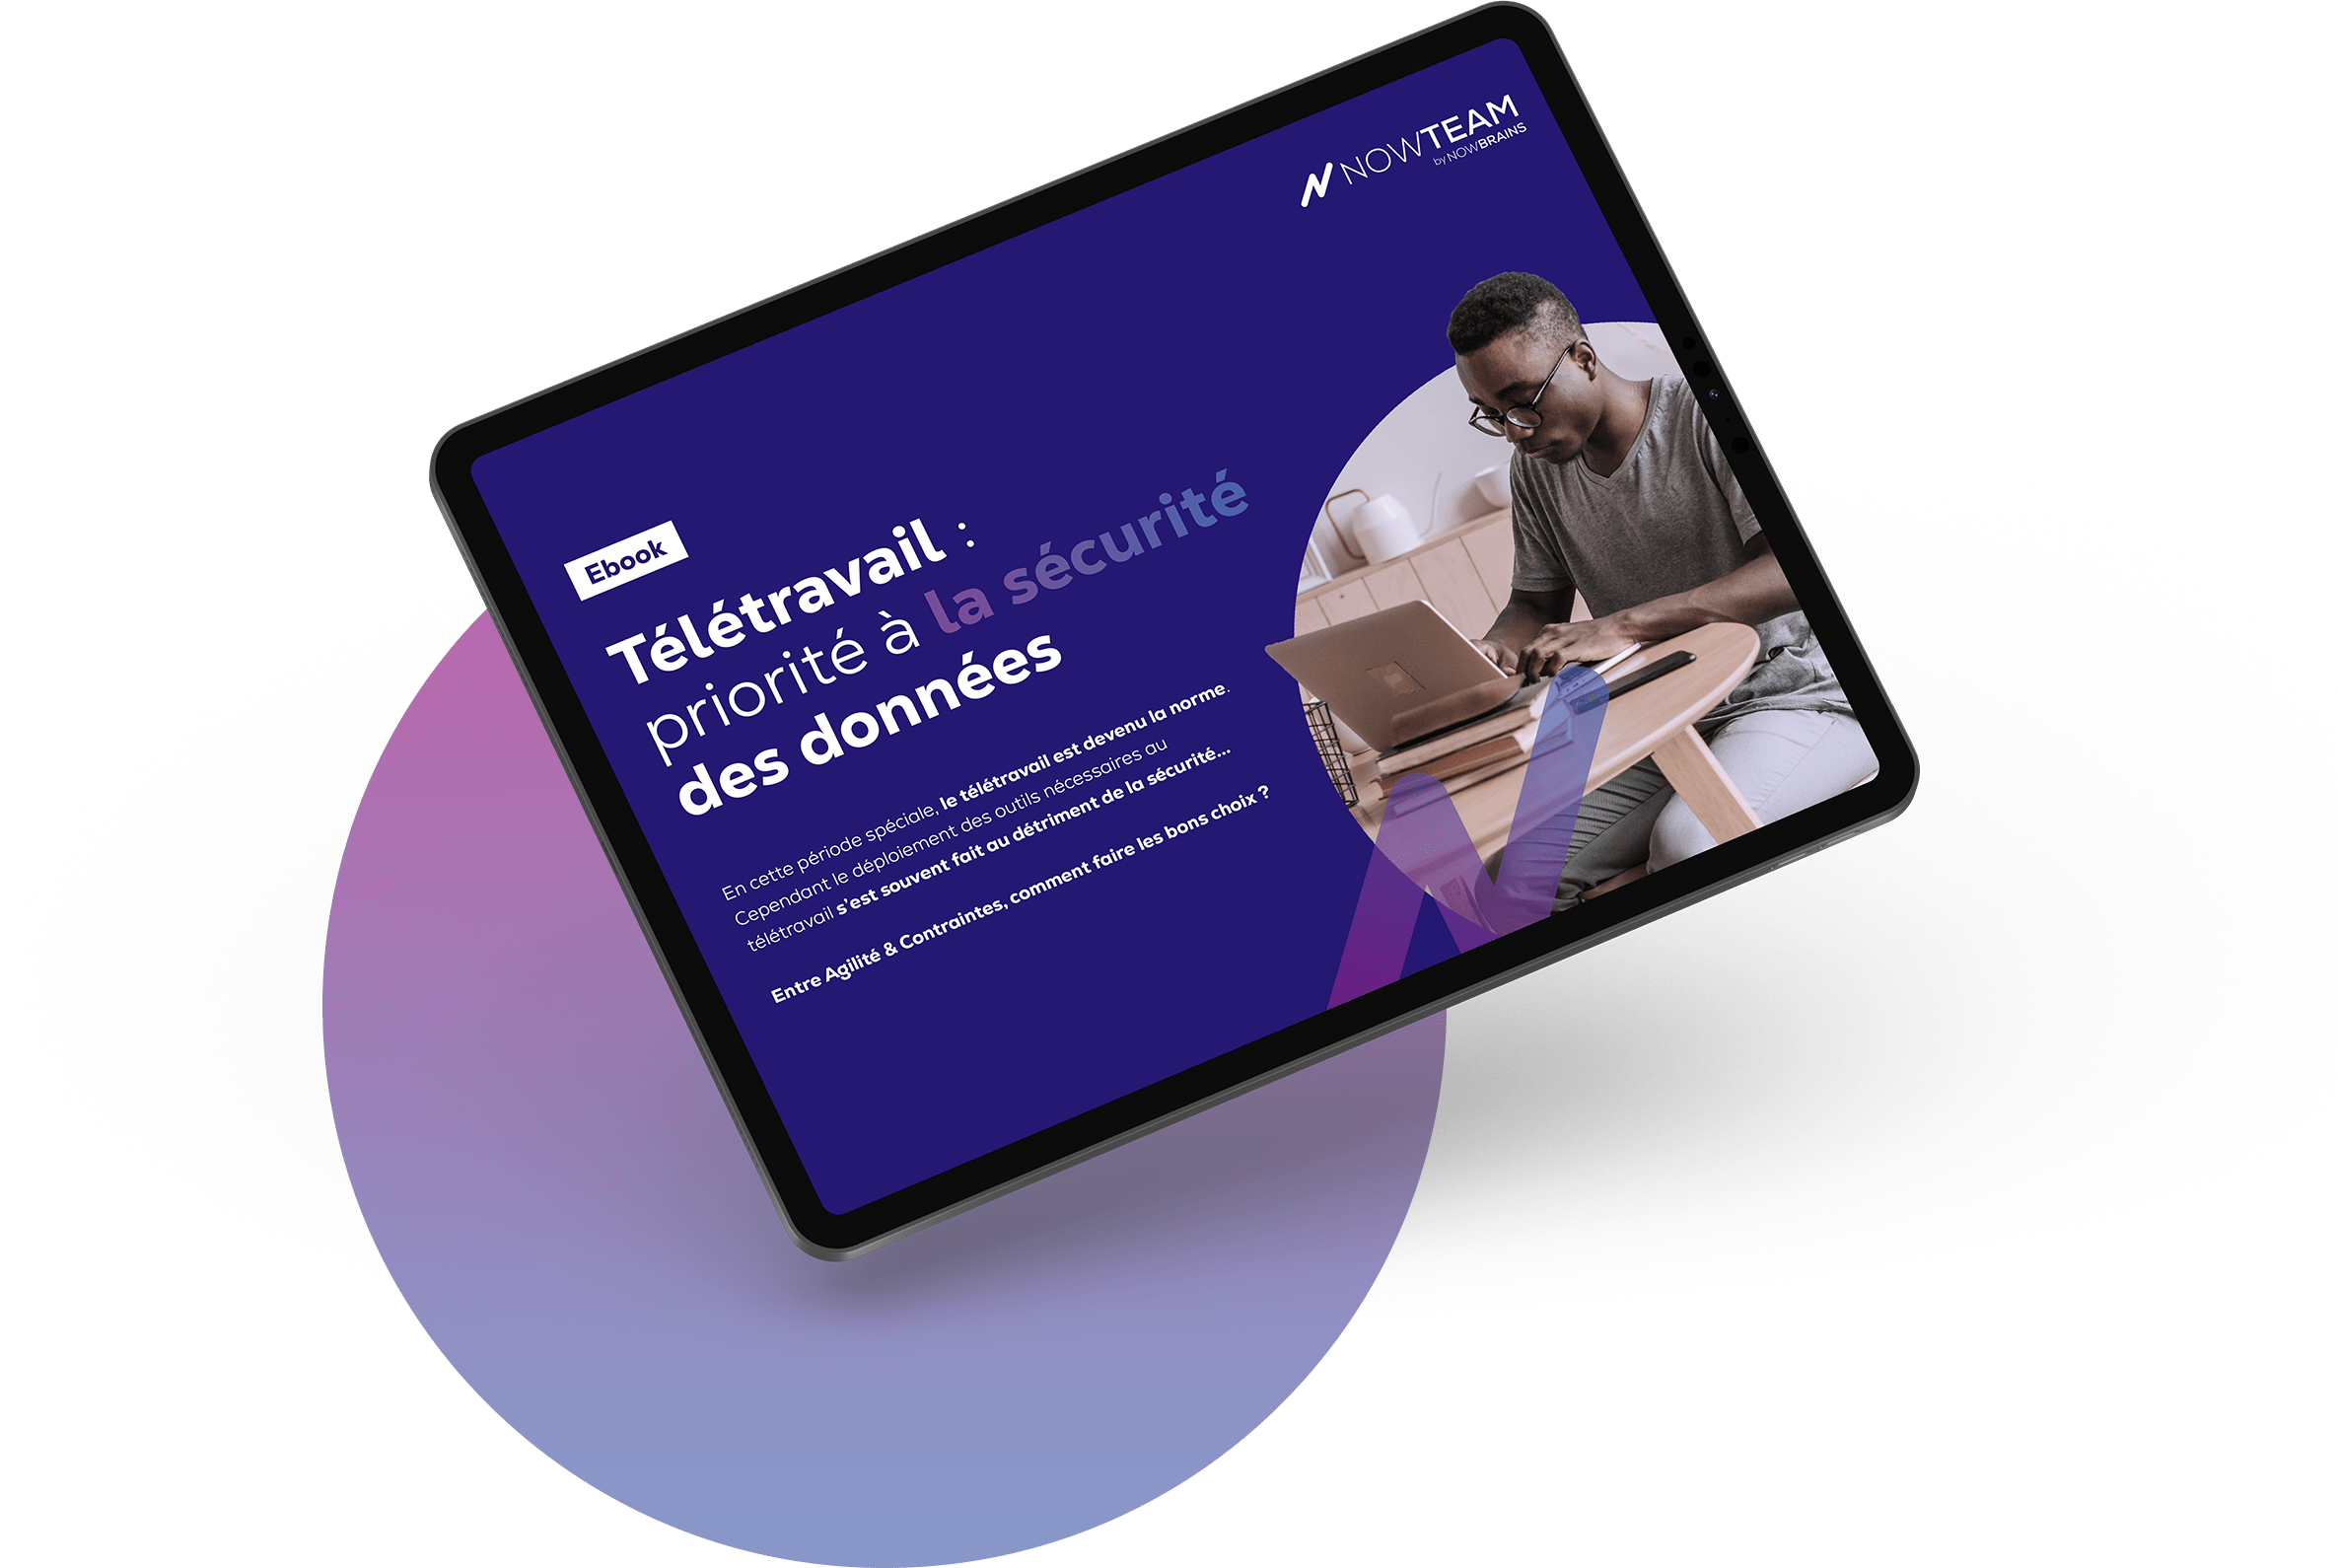 teletravail-securite-ebook